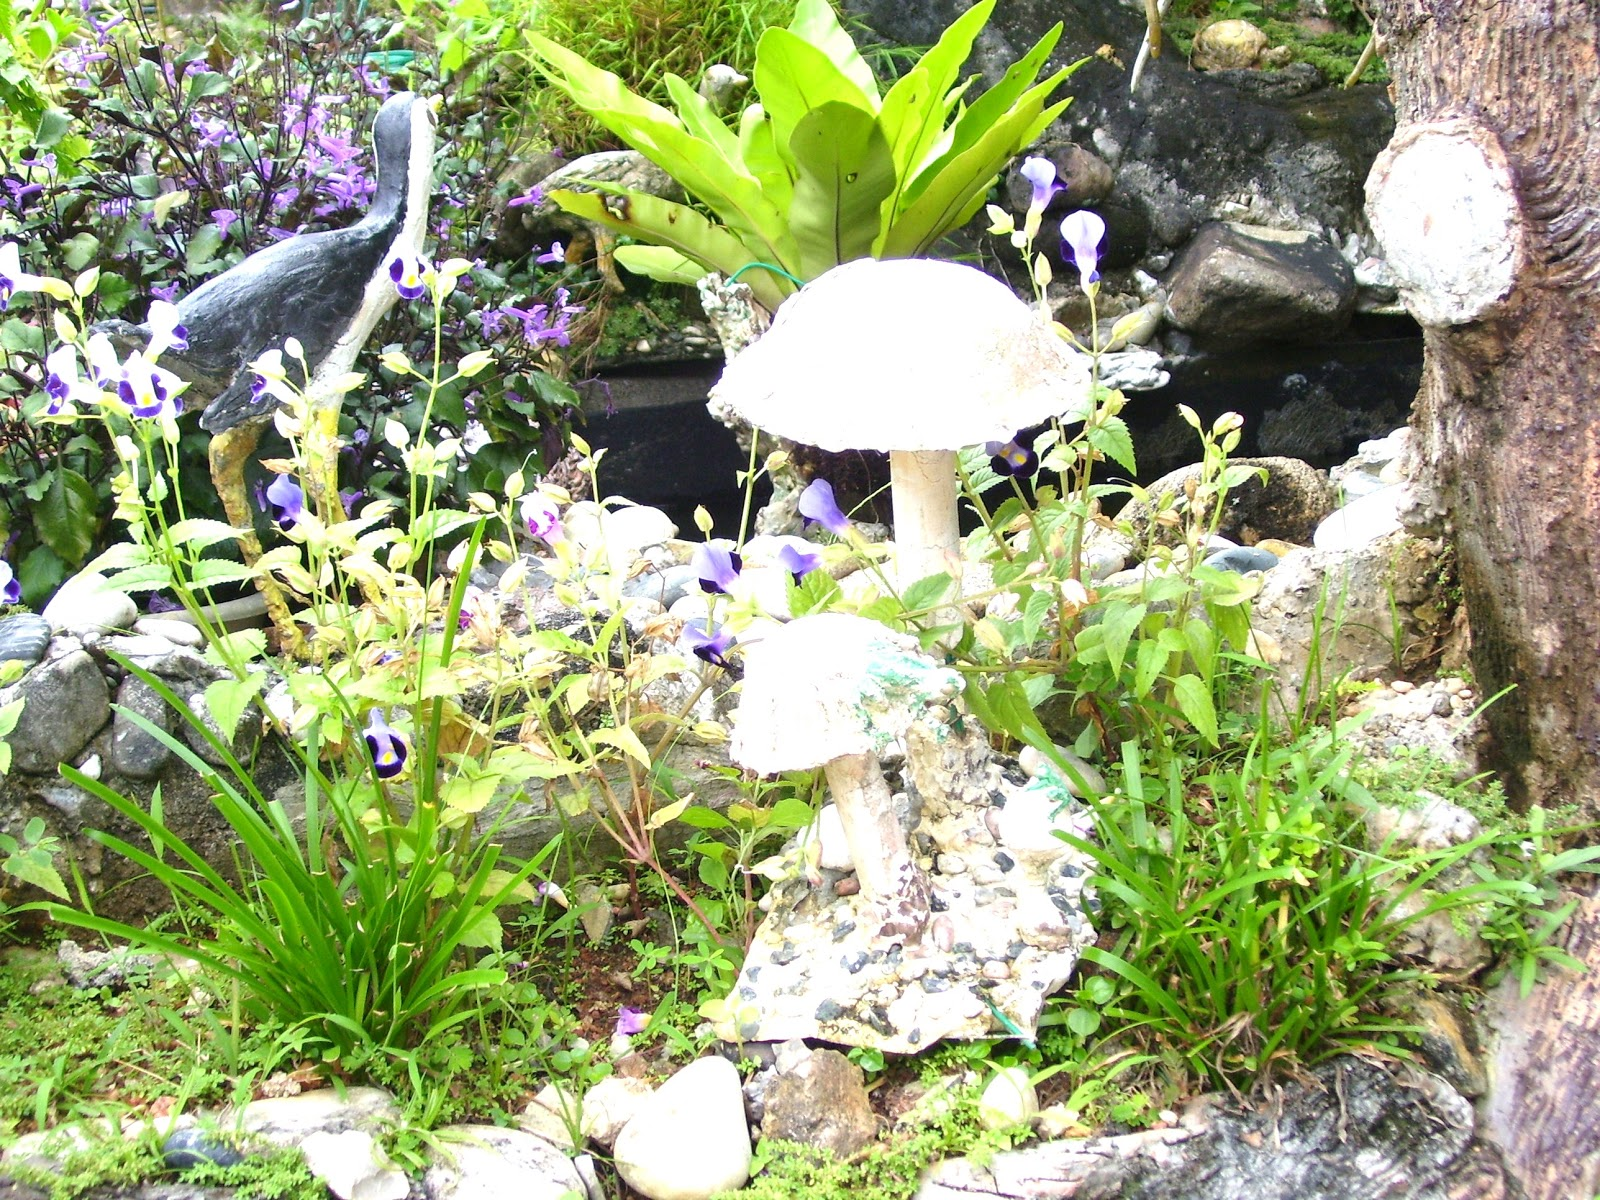 How To Make Decorative Mushrooms For The Garden